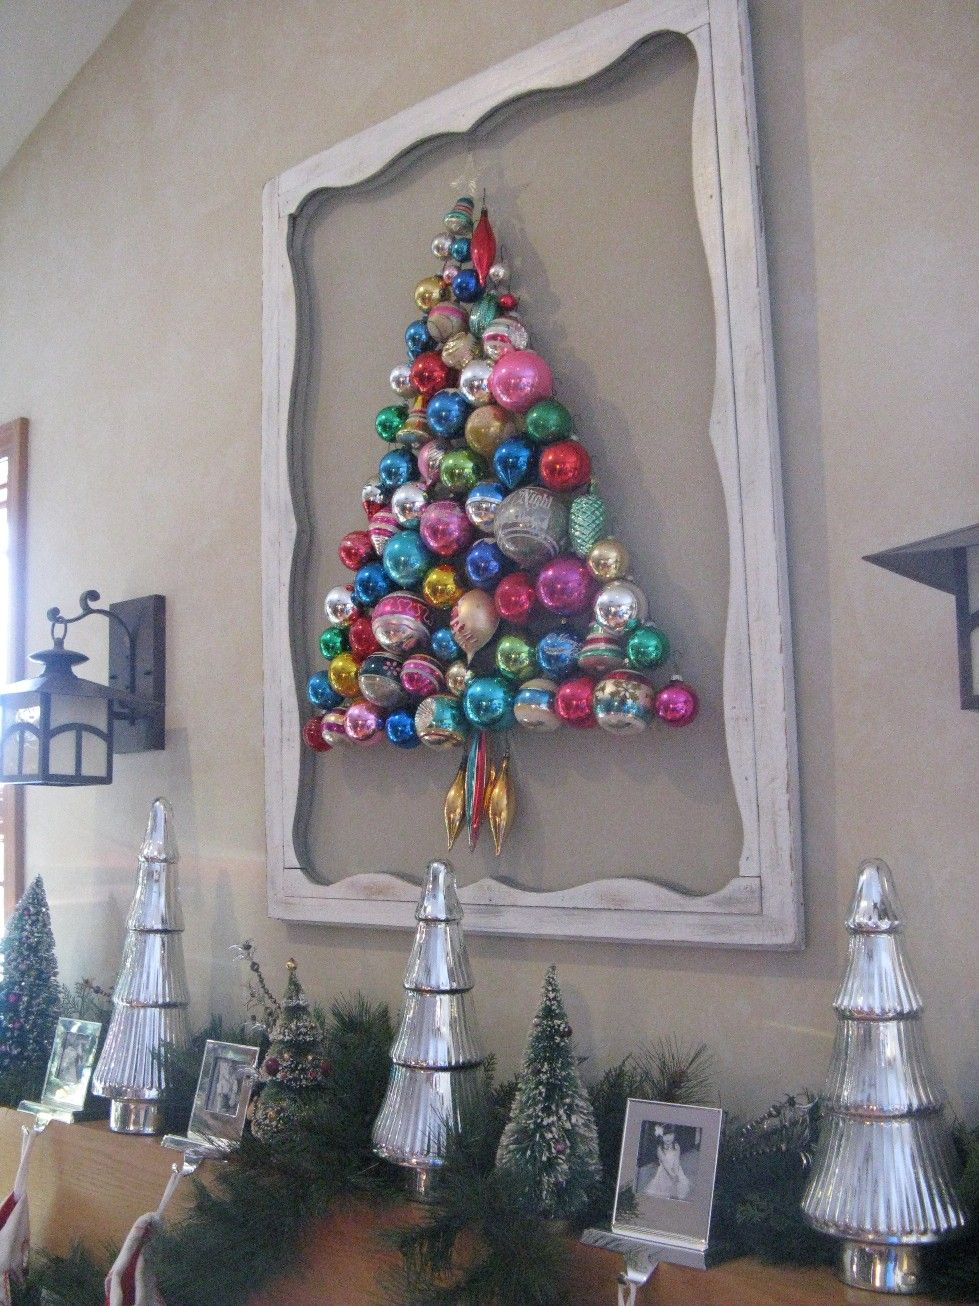 Vintage ornament tree on a refurbished screen